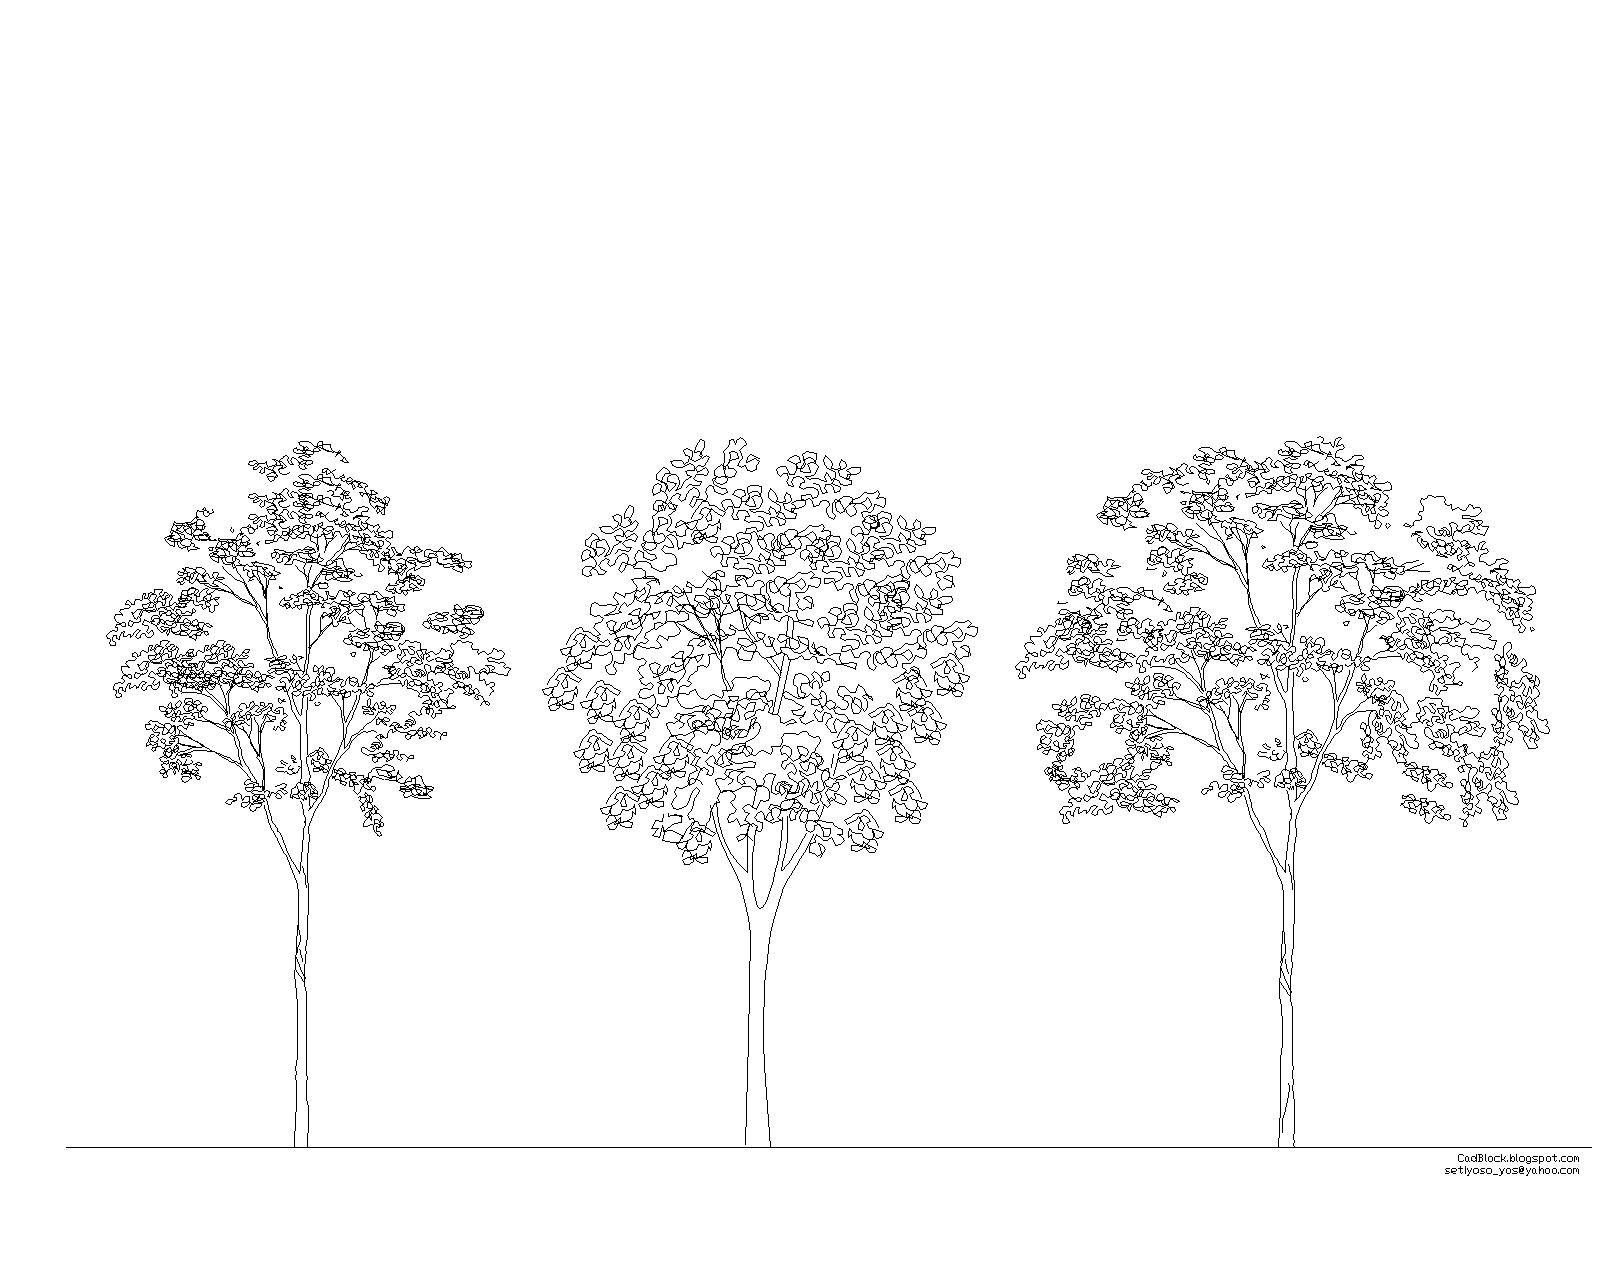 Top view plants 02 2d plant entourage for architecture - Bloc Arbre Pour Autocad Dwg